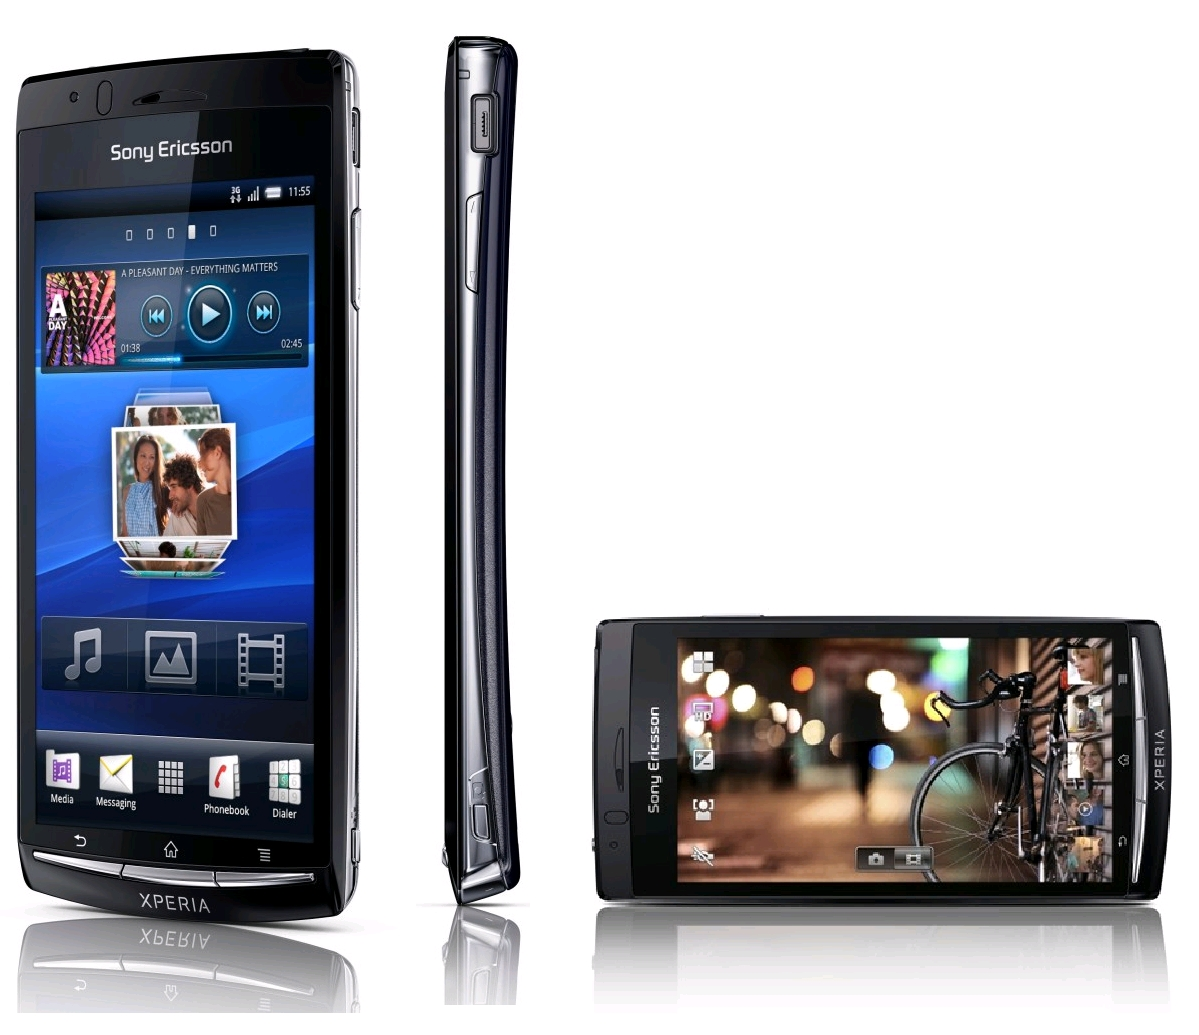 sony ericsson xperia arc s specifications features price. Black Bedroom Furniture Sets. Home Design Ideas